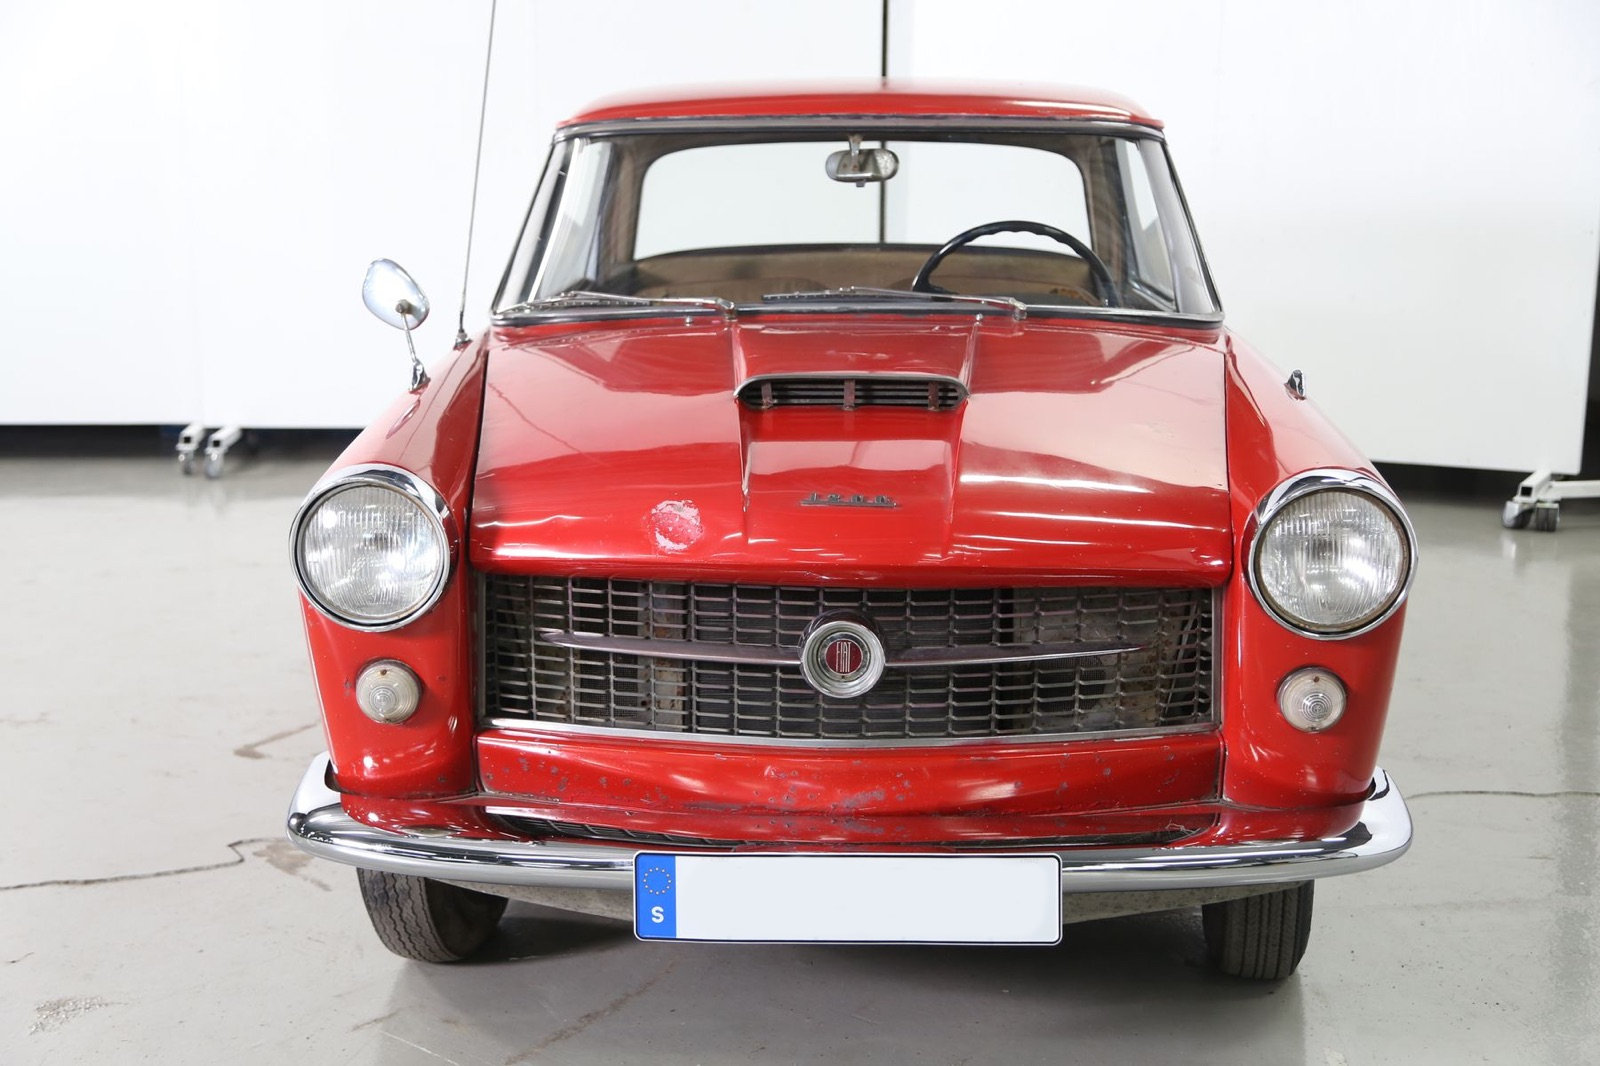 1958 FIAT 1200 coupe pininfarina,  only 19 cars made, Lancia, For Sale (picture 1 of 2)